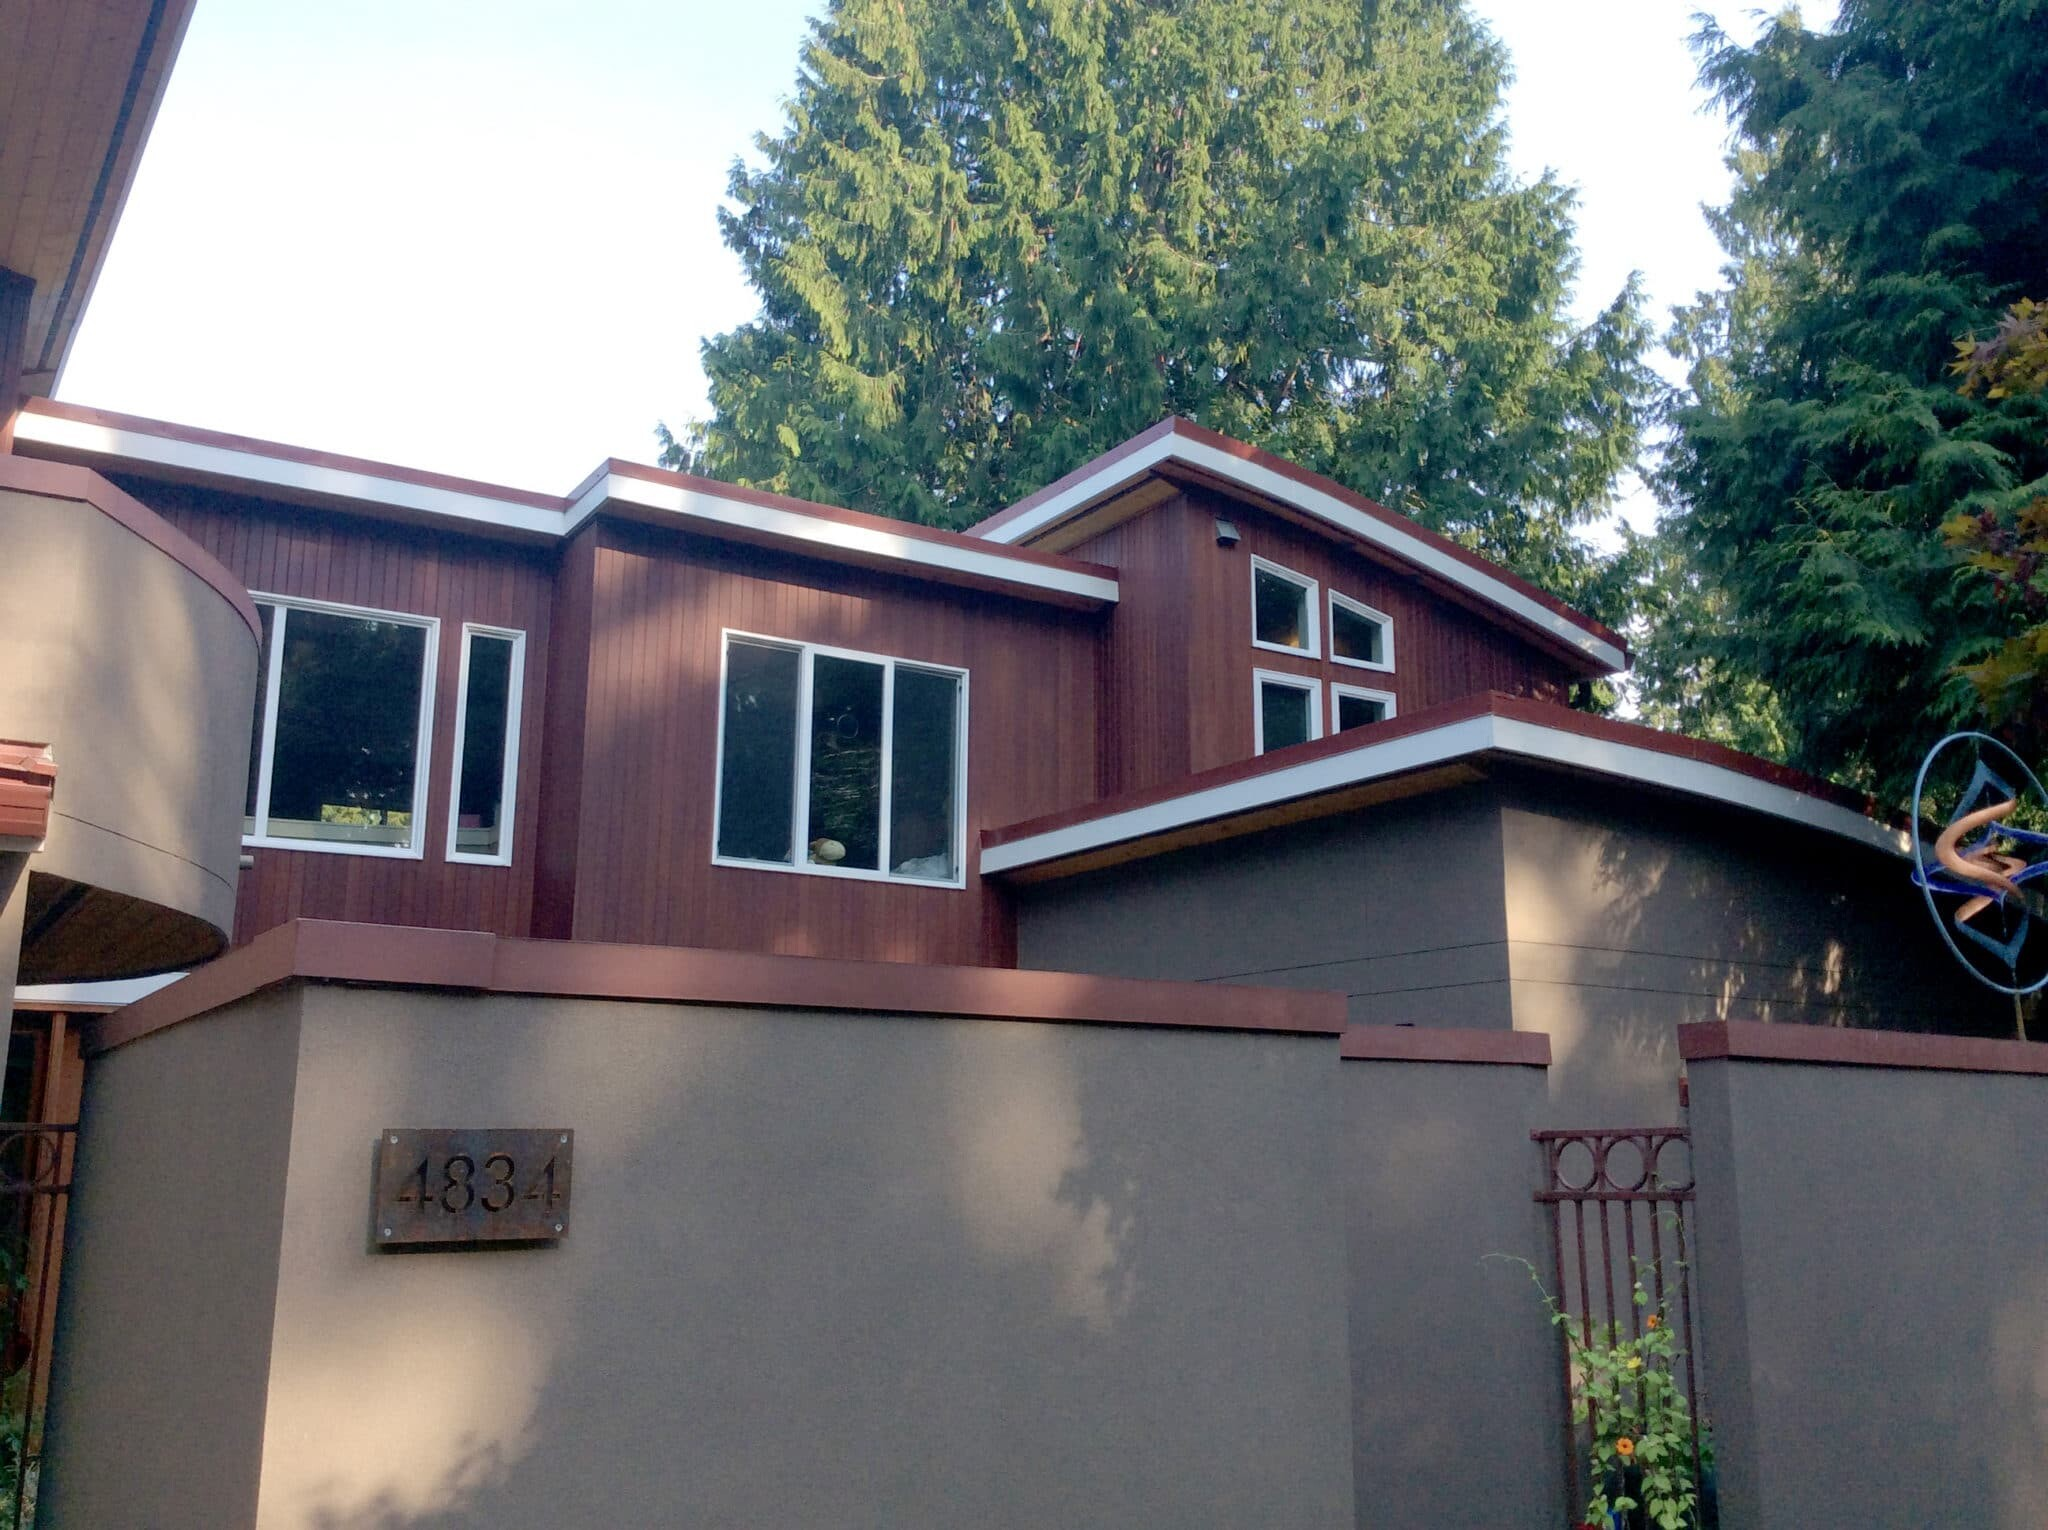 Exterior painting in Mercer Island, WA